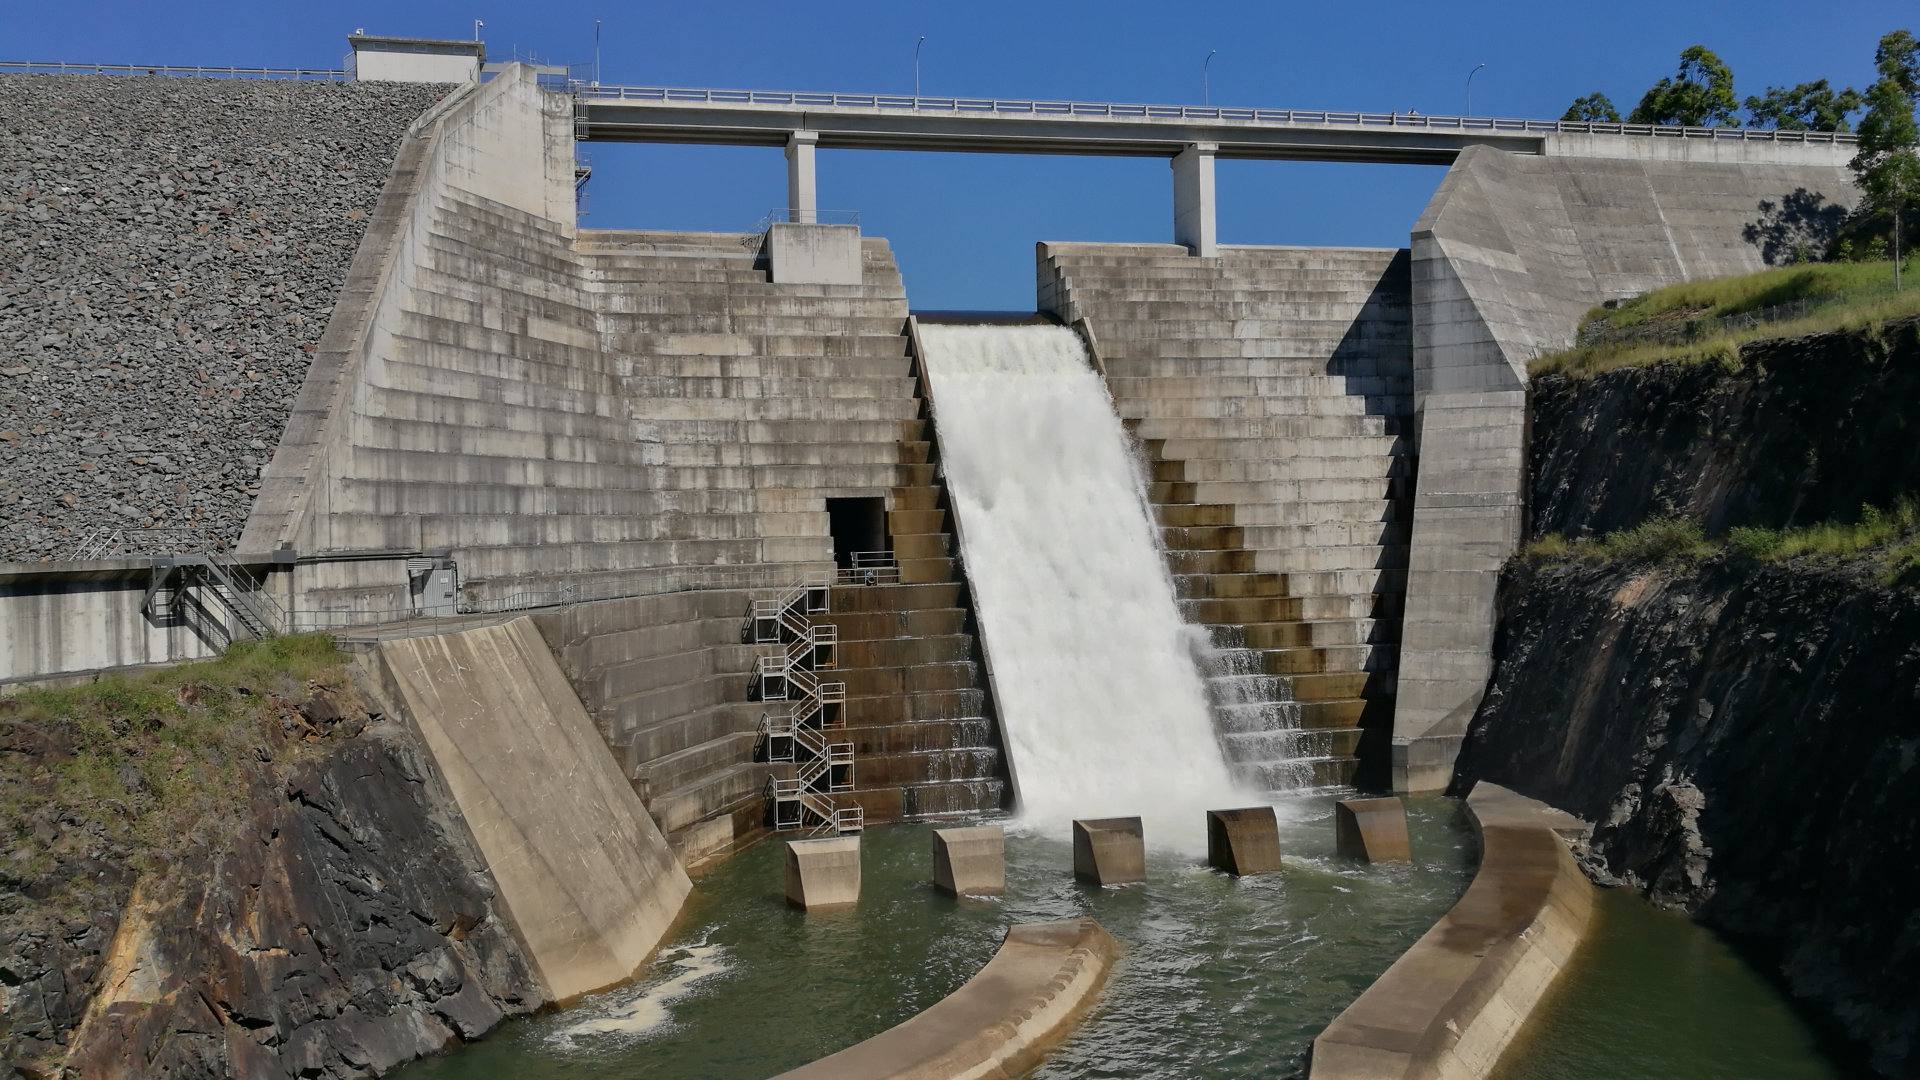 Hinze Dam spillway with water flowing over it. Hinze Dam is Gold Coast's main water supply. It has picnic areas with BBQs and tables, views of the dam, and mountain bike trails at the other end on the dam wall